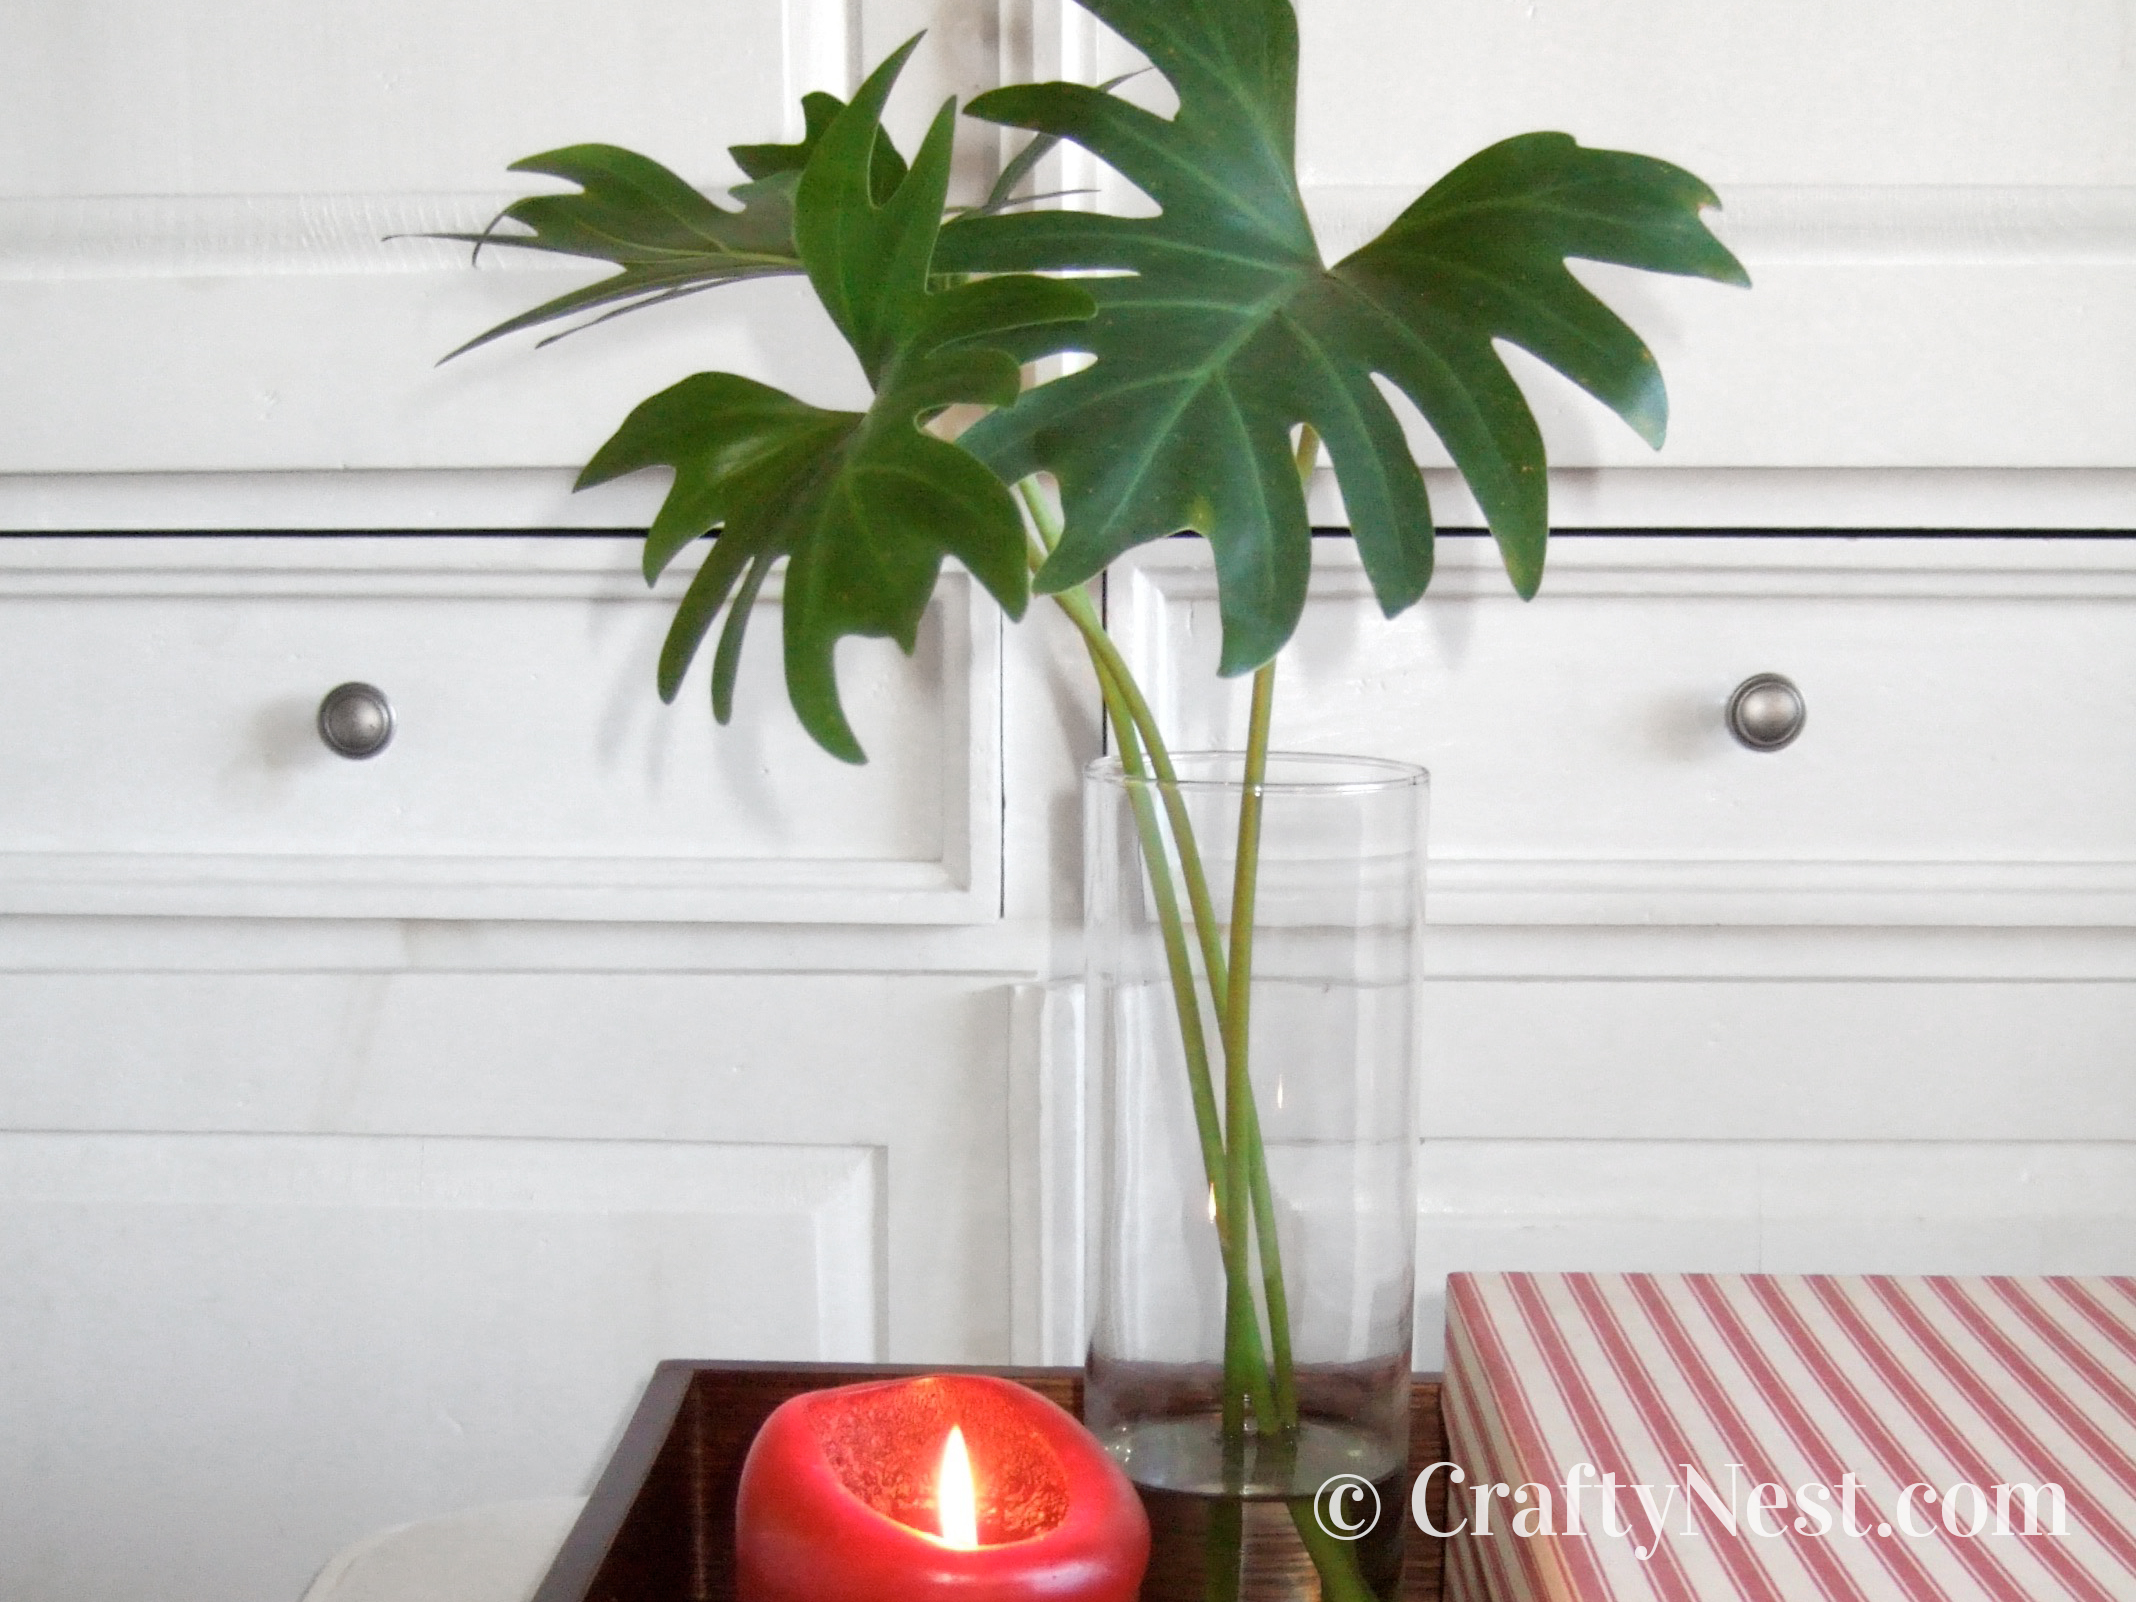 Philadendron leaves in a vase, photo